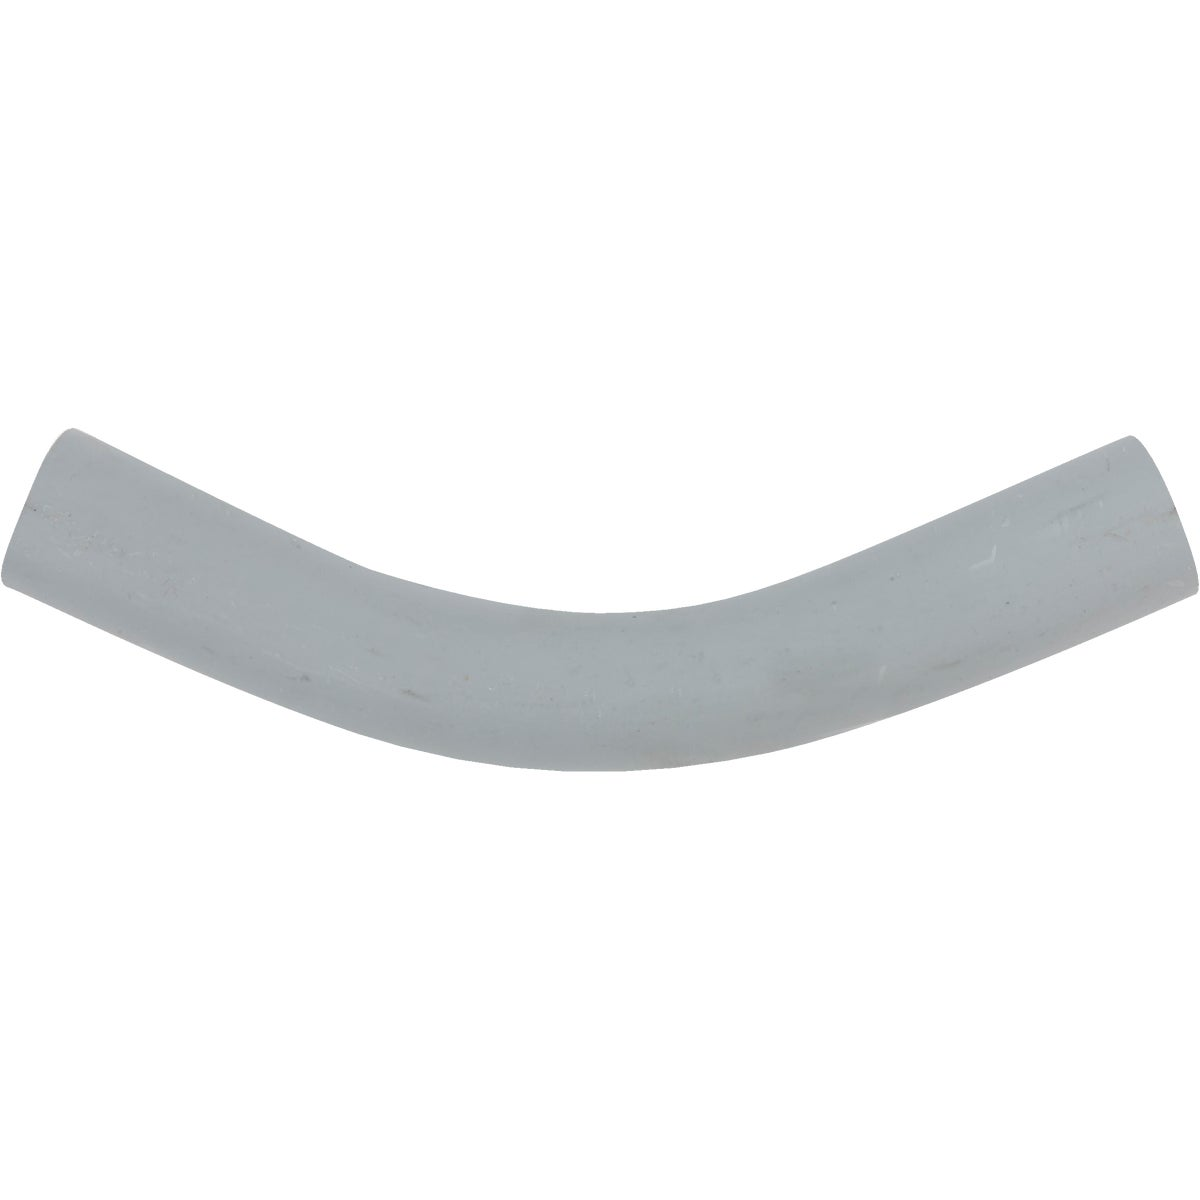 "1"" PVC ELBOW - UA7AFRCTN by Thomas & Betts"